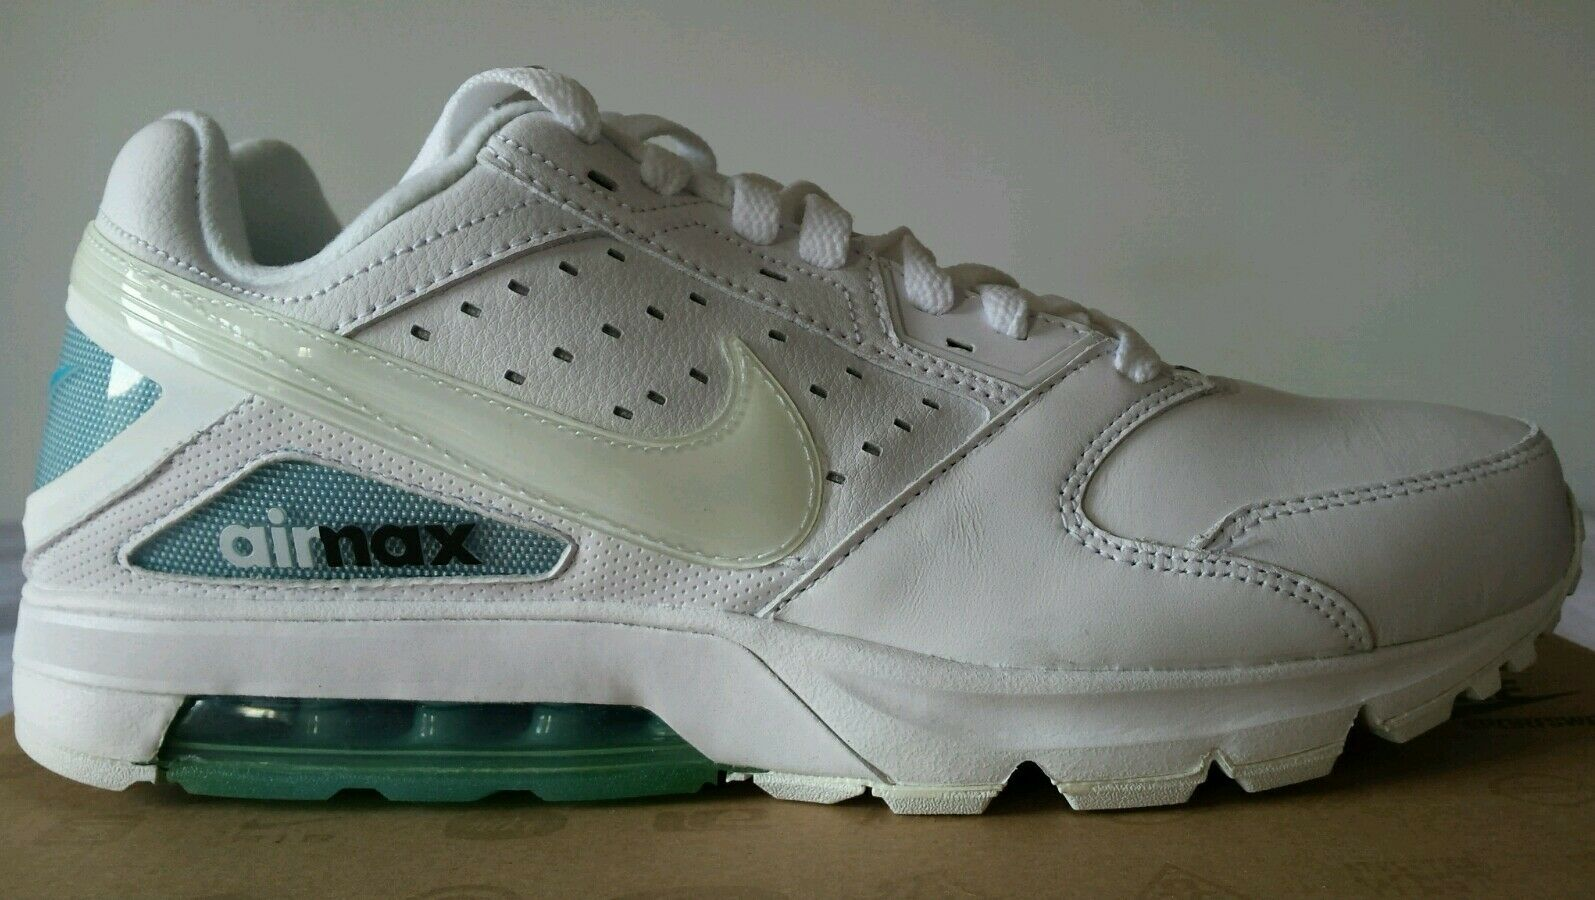 NIKE AIR MAX PREVIEW 97 BW BIANCA N.45 TUTTA IN PELLE NEW SPETTACOLARI OKKSPORT